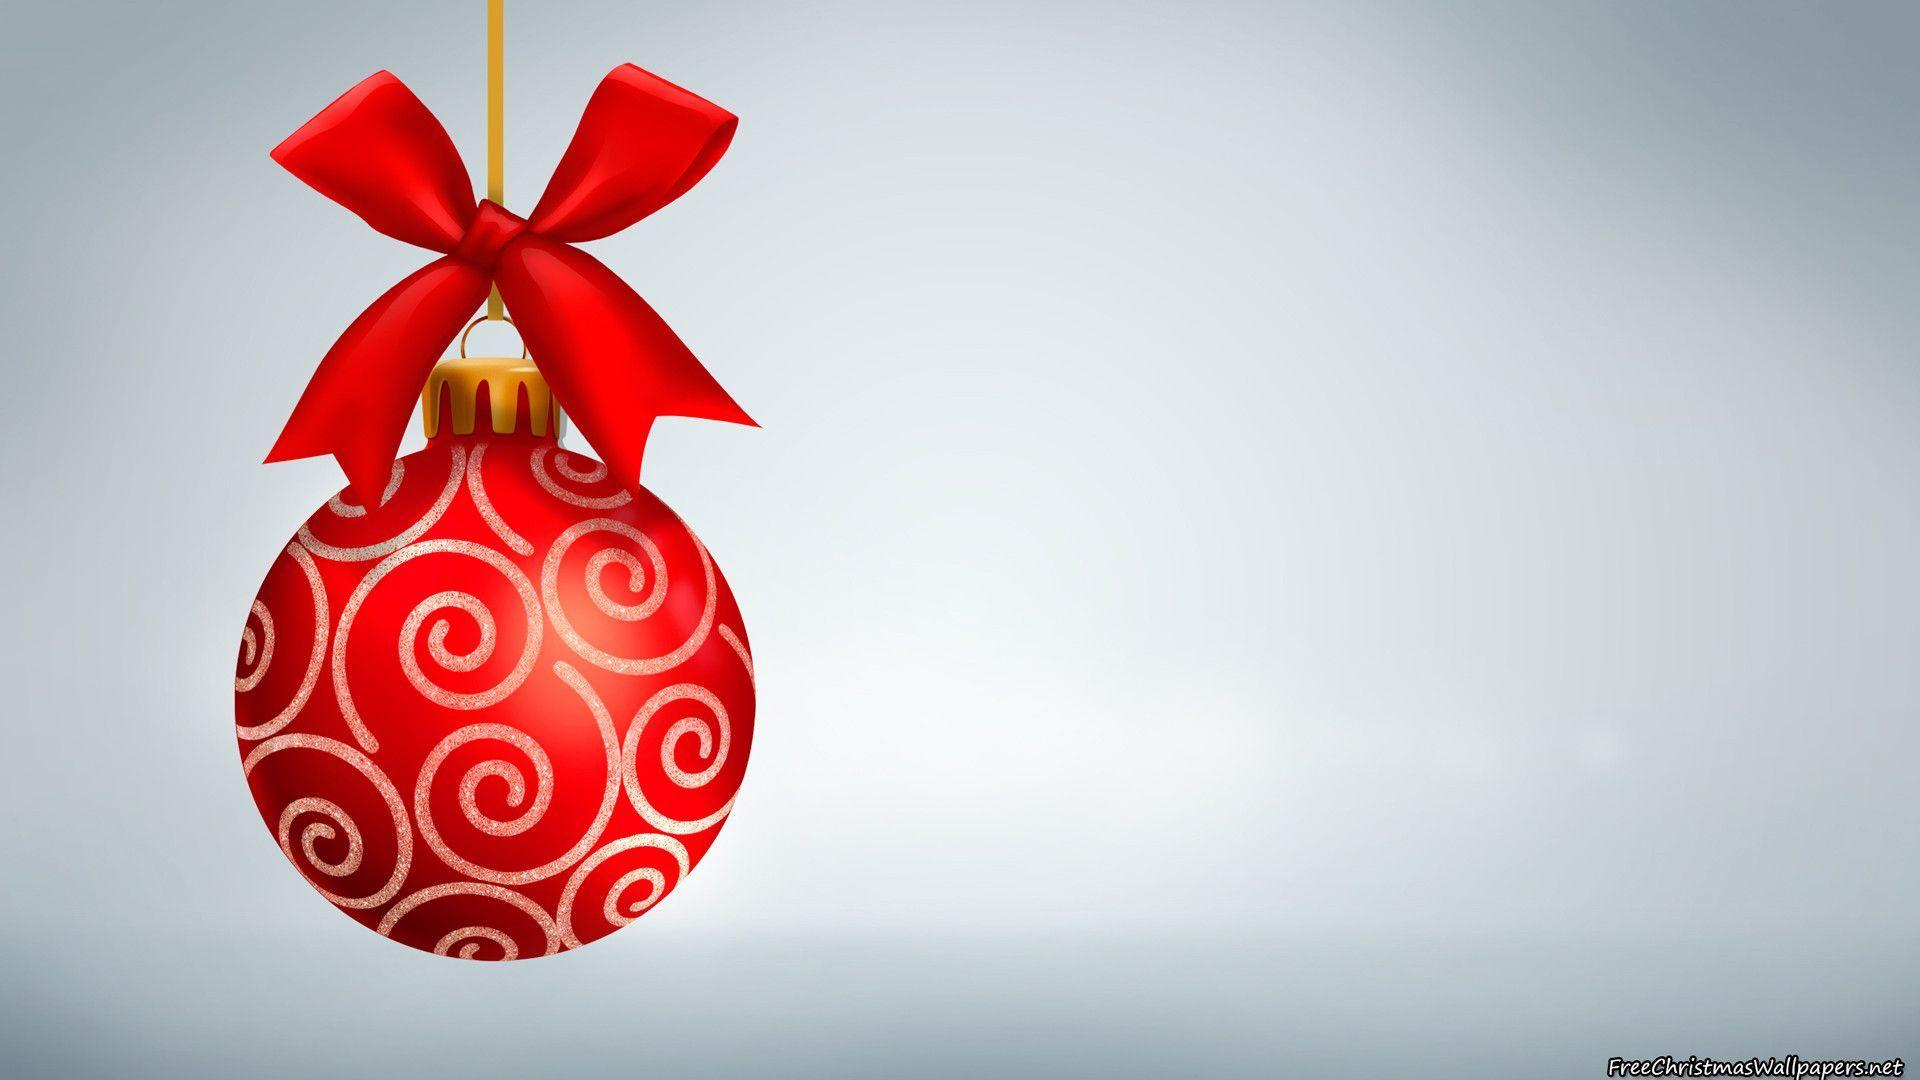 Christmas Decorations Wallpapers Wallpaper Cave HD Wallpapers Download Free Images Wallpaper [1000image.com]